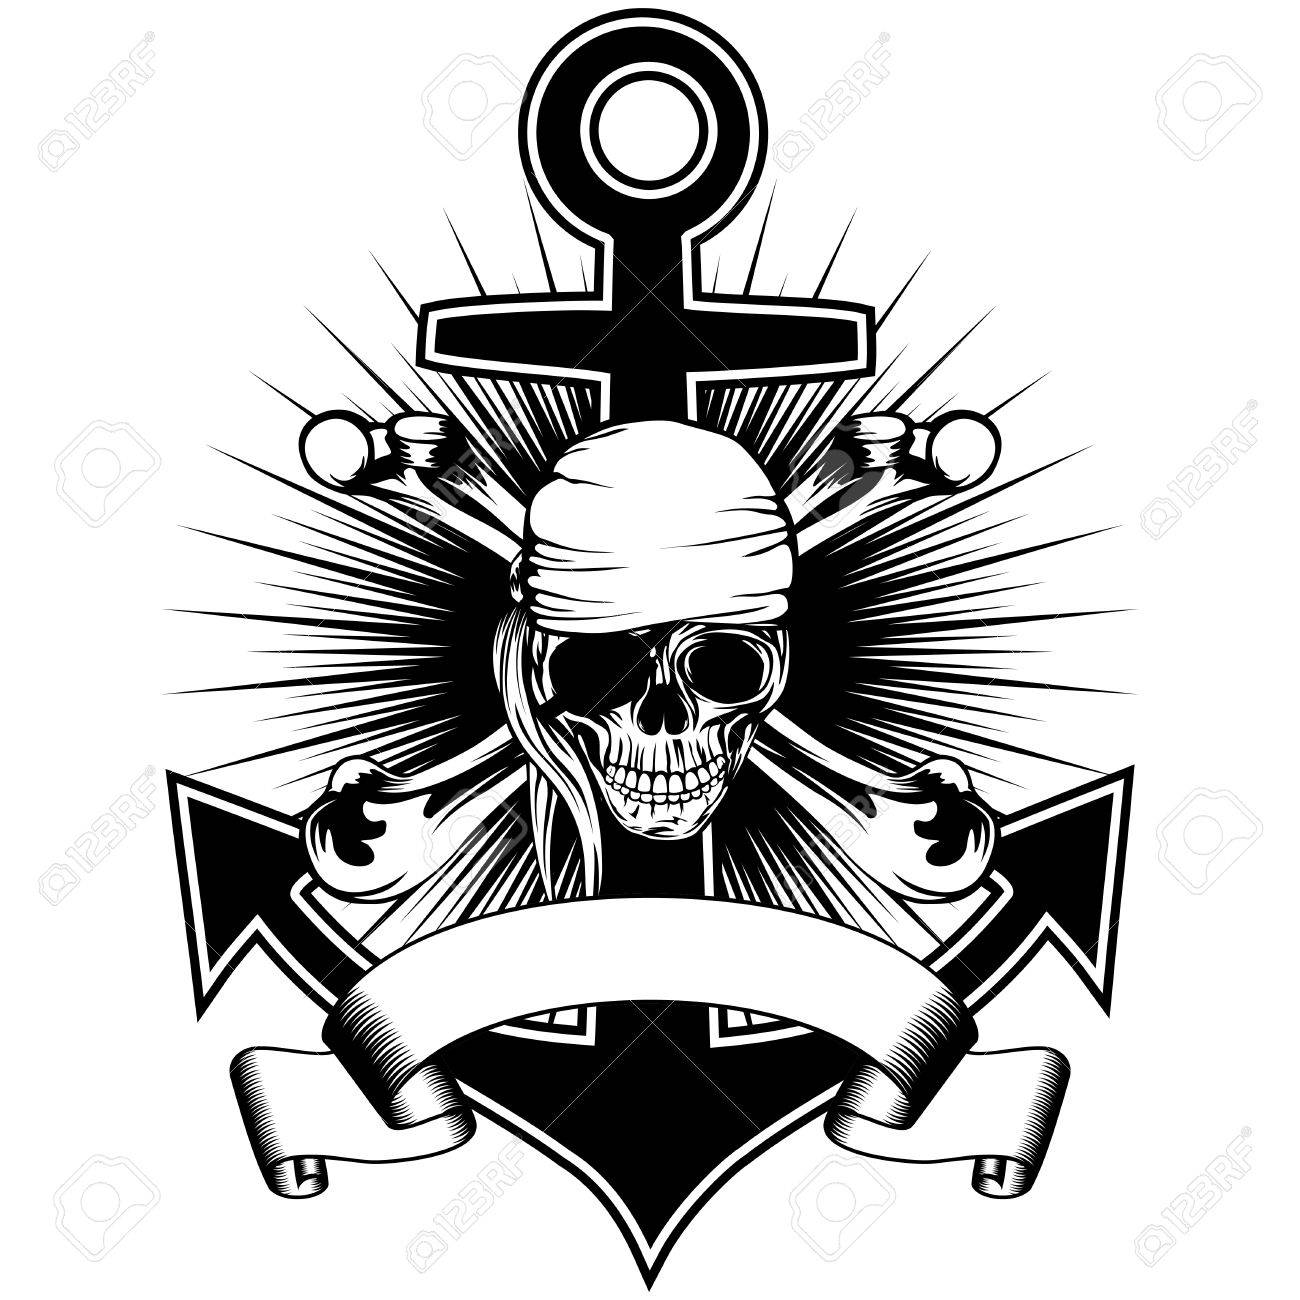 1300x1300 Vector Illustration Pirate Insignia Skull In Bandana With Crossed